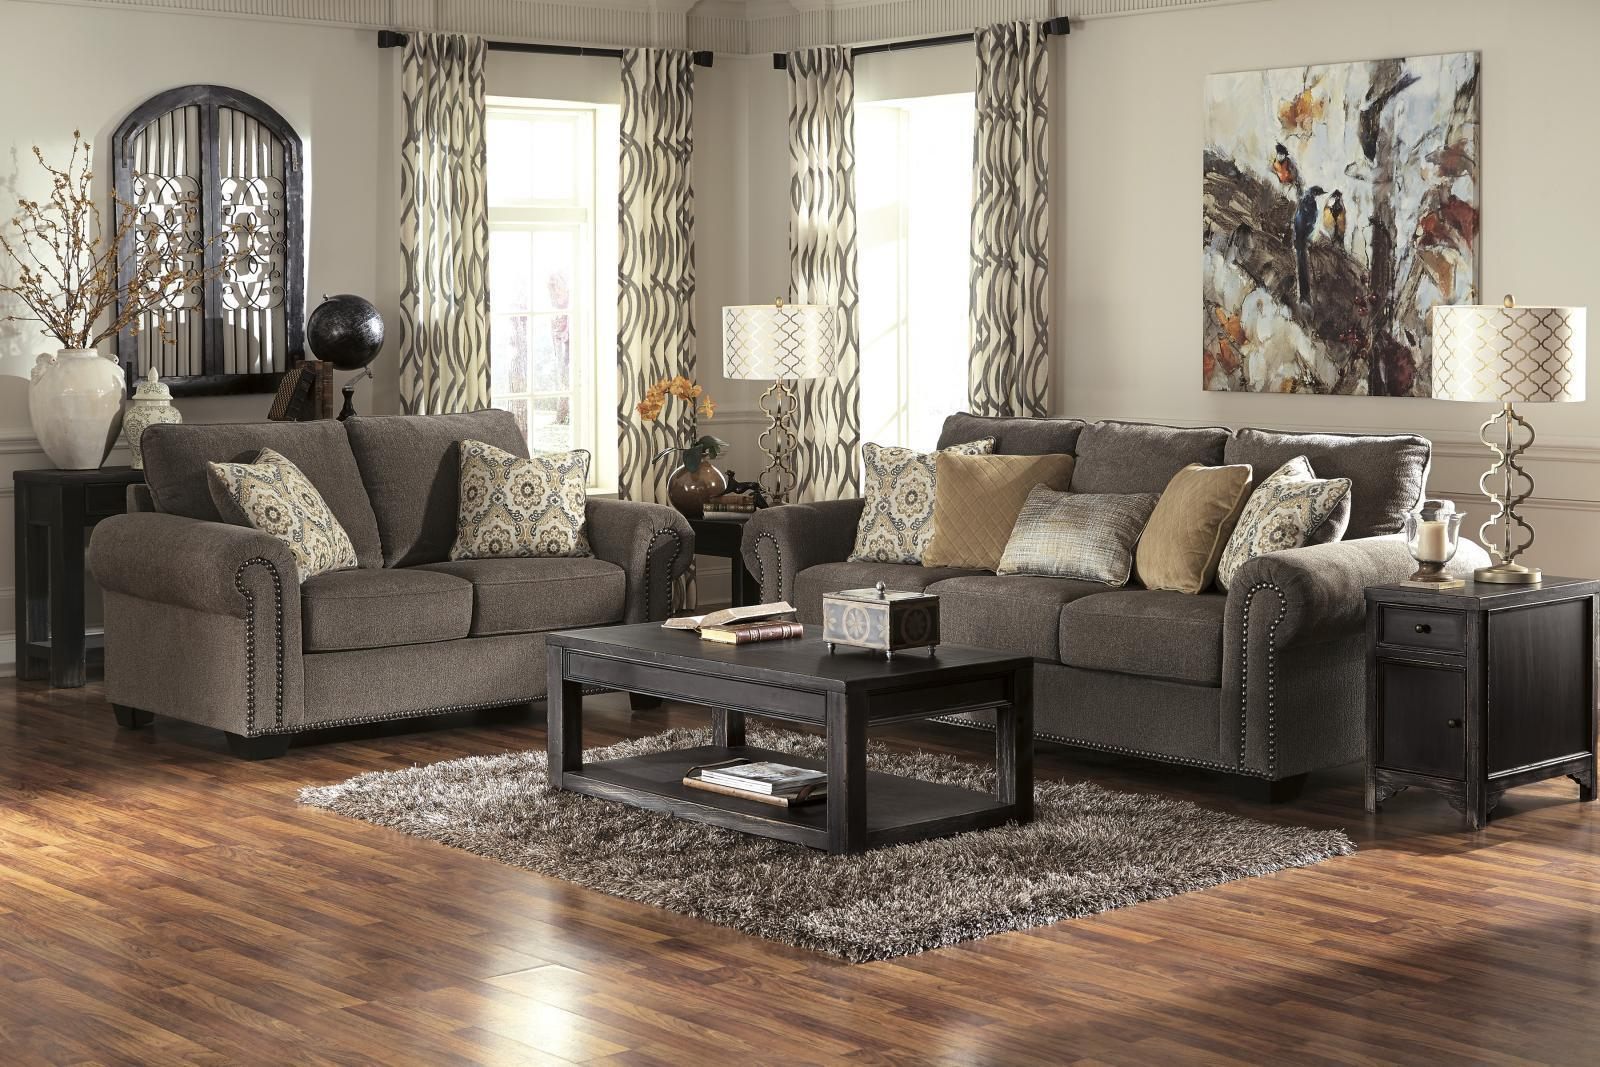 Ashley Emelen Living Room Set 2pcs in Alloy Upholstery Fabric Contemporary Style